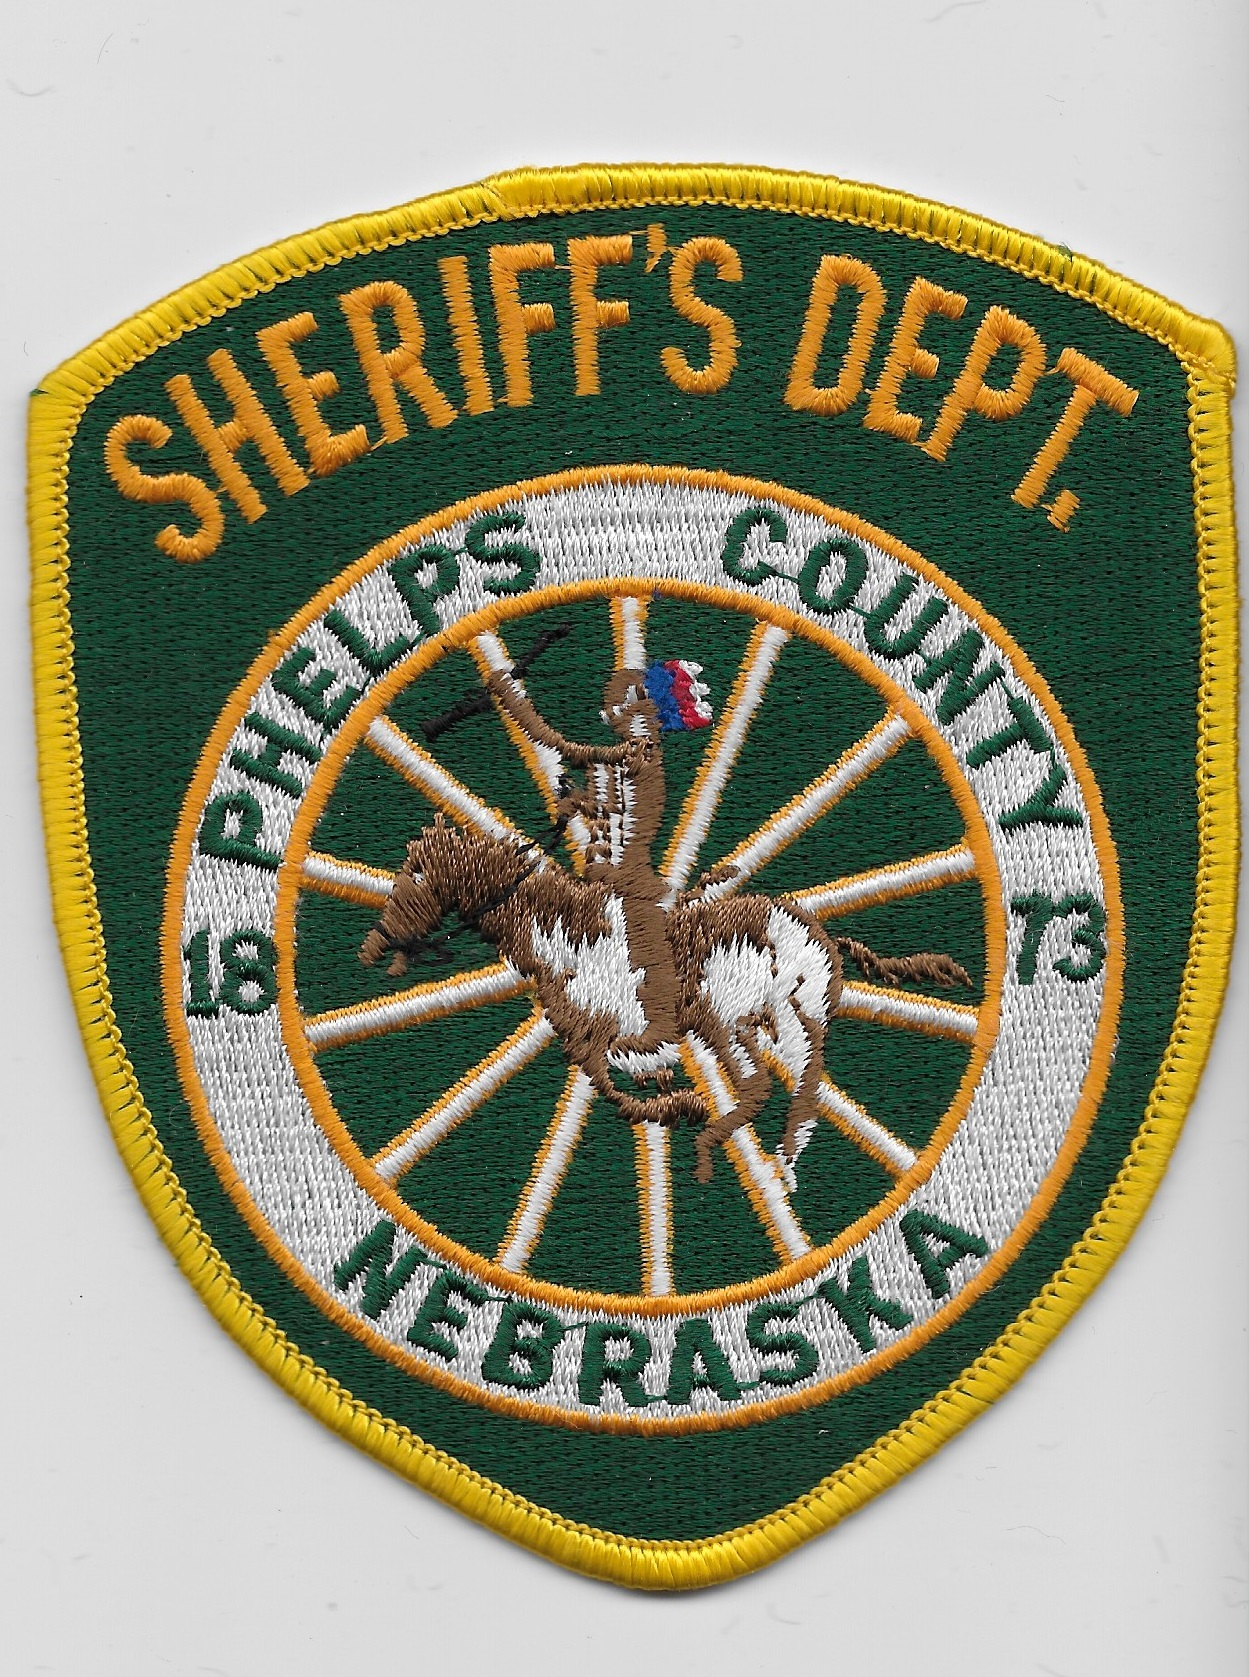 Phelps County Sheriff NE